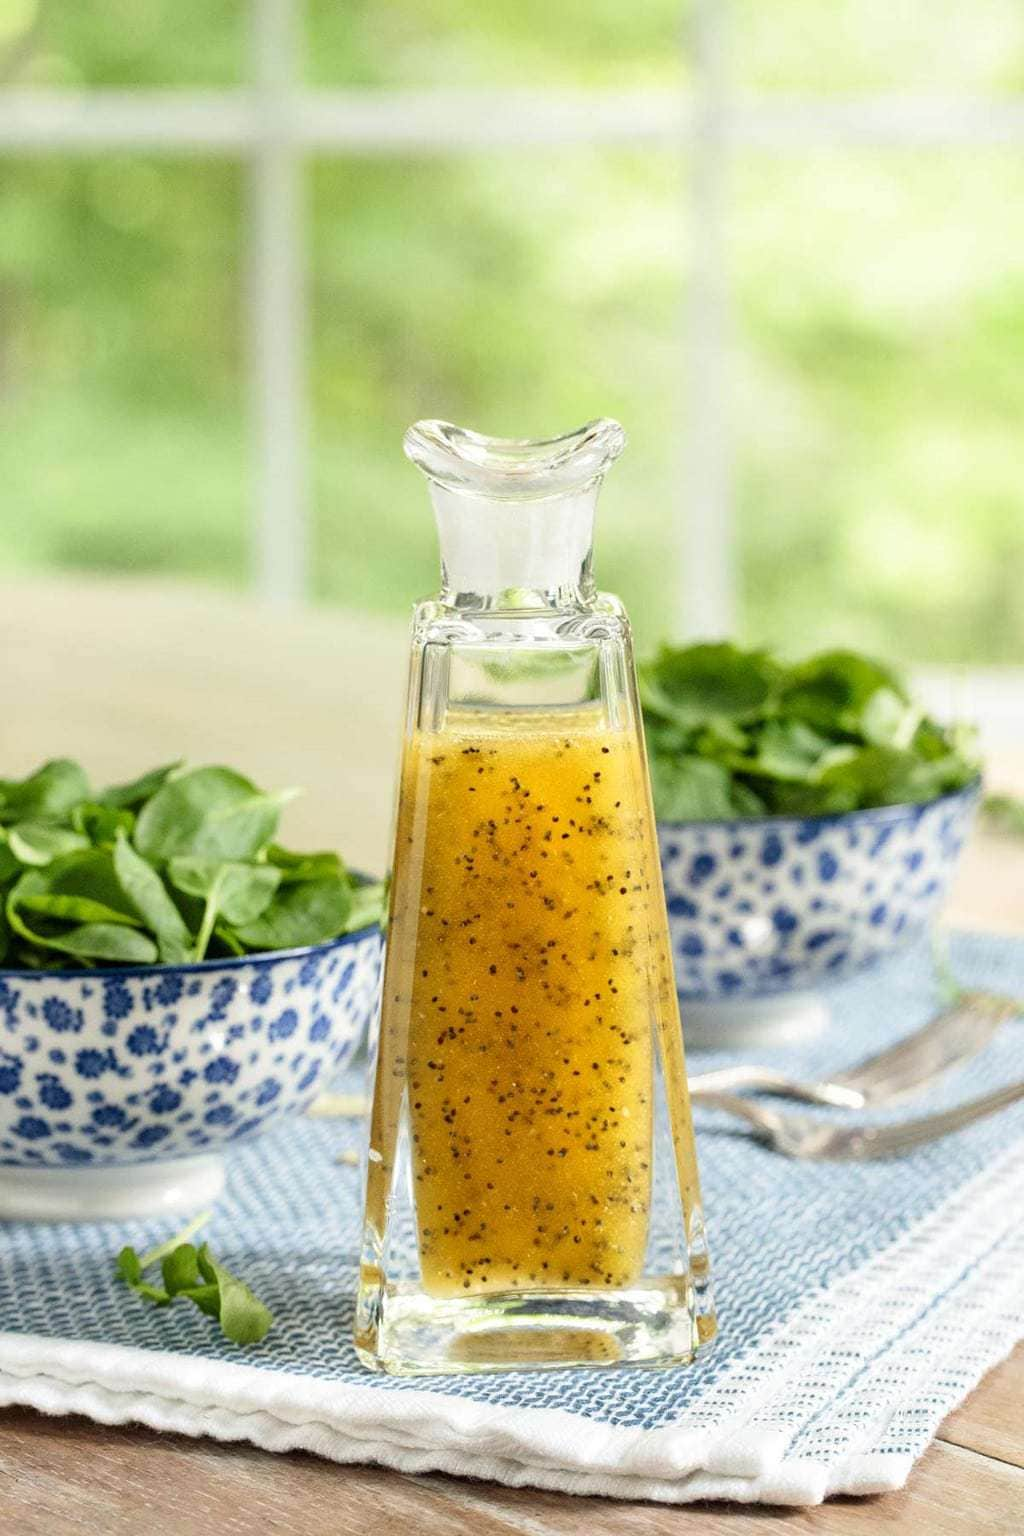 Photo of a glass decanter of Honey-Cider Poppy Seed Dressing a dining room table with bowls of fresh spinach in the background.